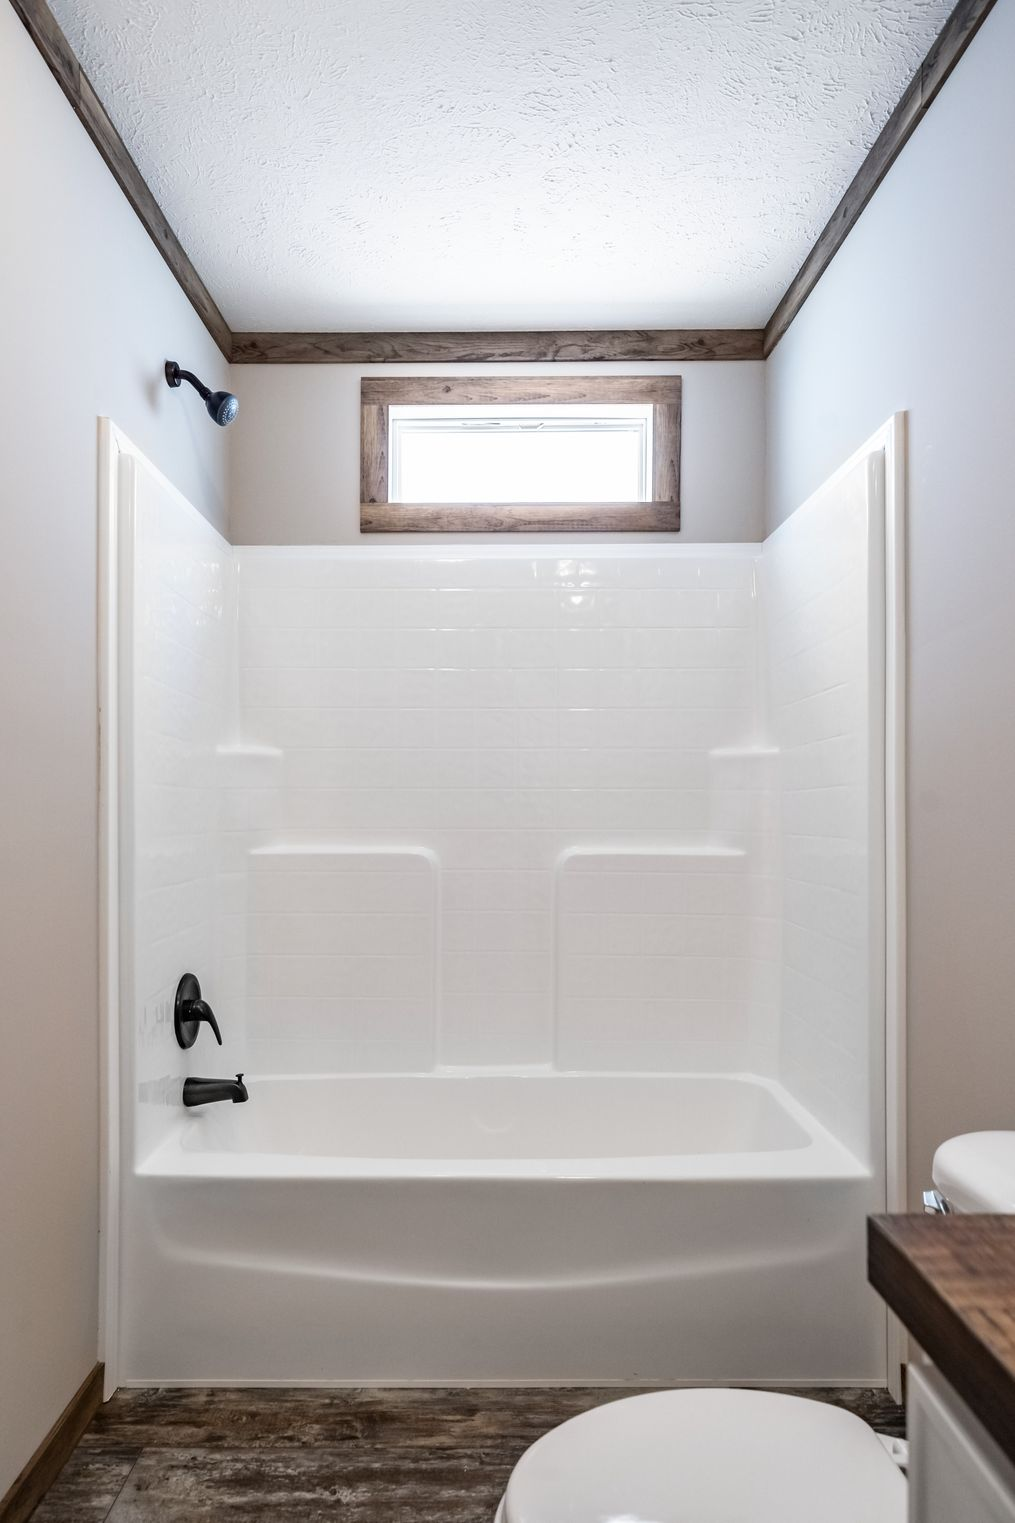 The THE BOBBY JO Guest Bathroom. This Manufactured Mobile Home features 3 bedrooms and 2 baths.